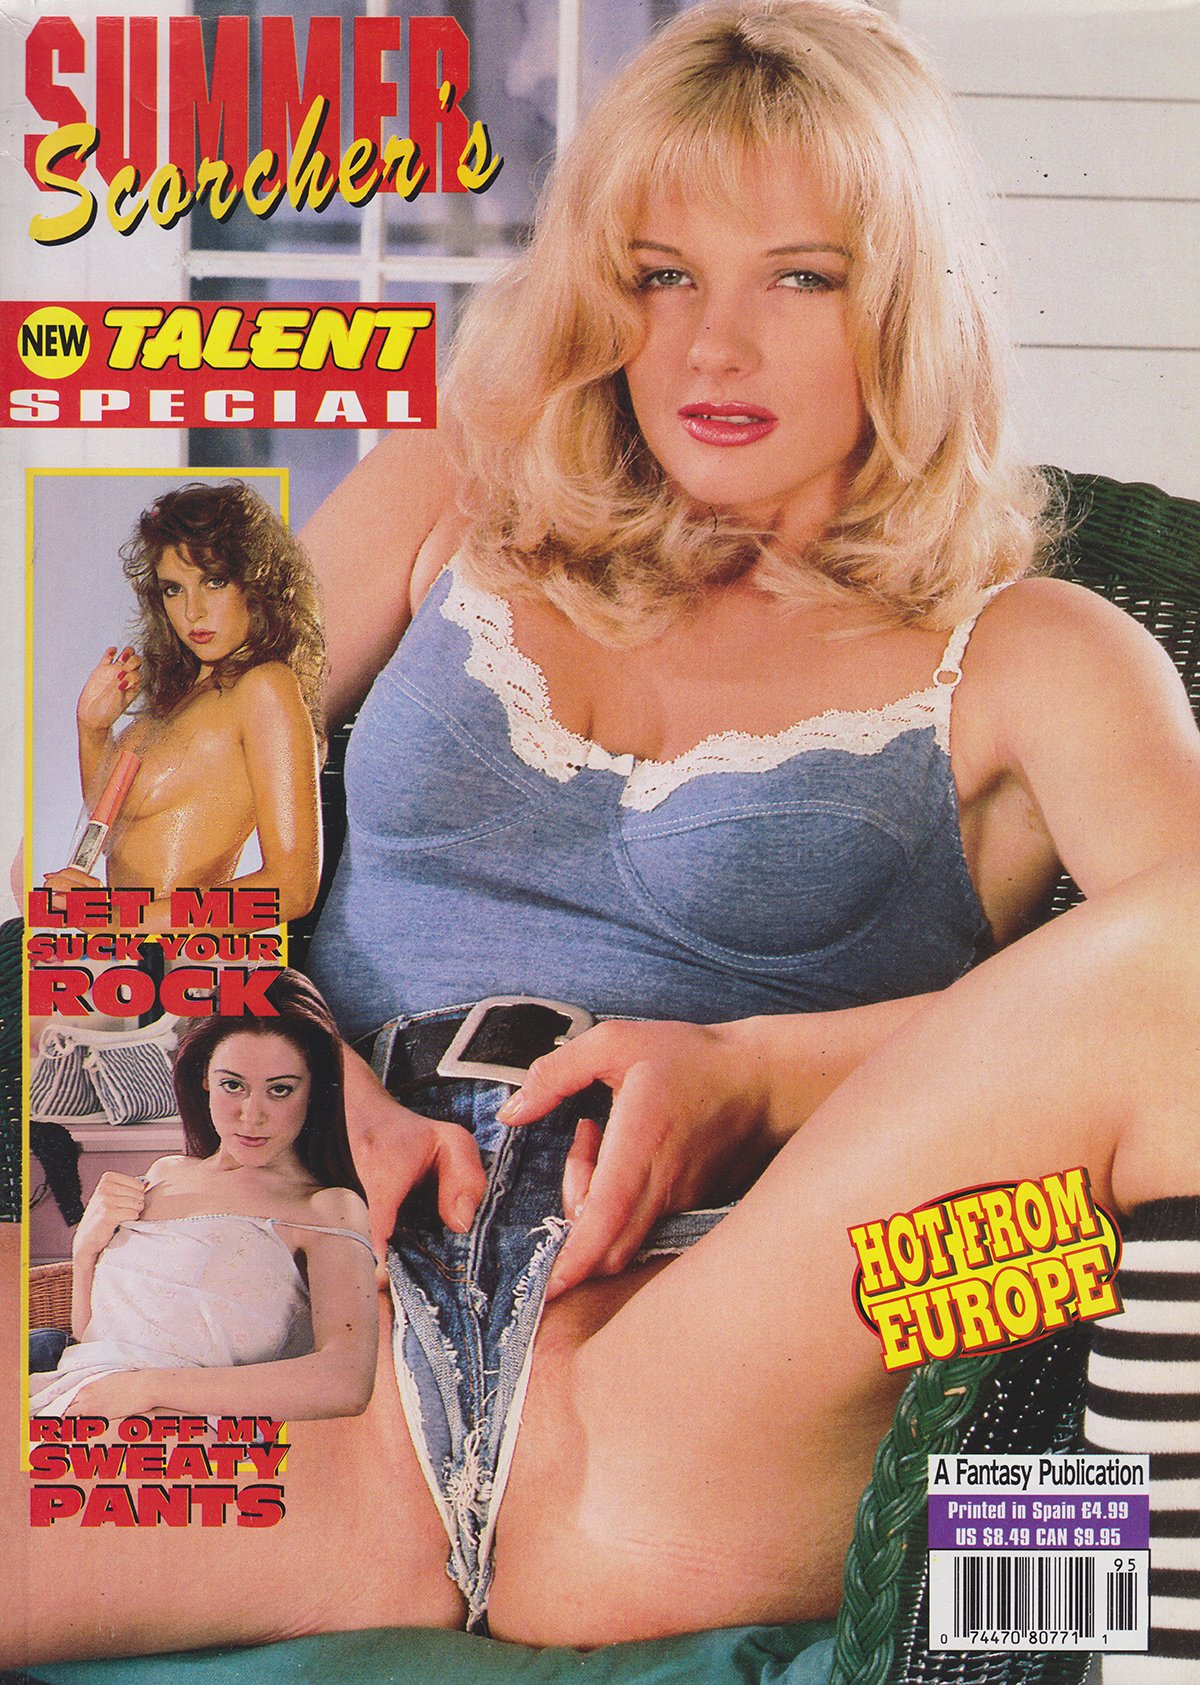 New Talent Special # 95 - Summer Scorcher's thumbnail